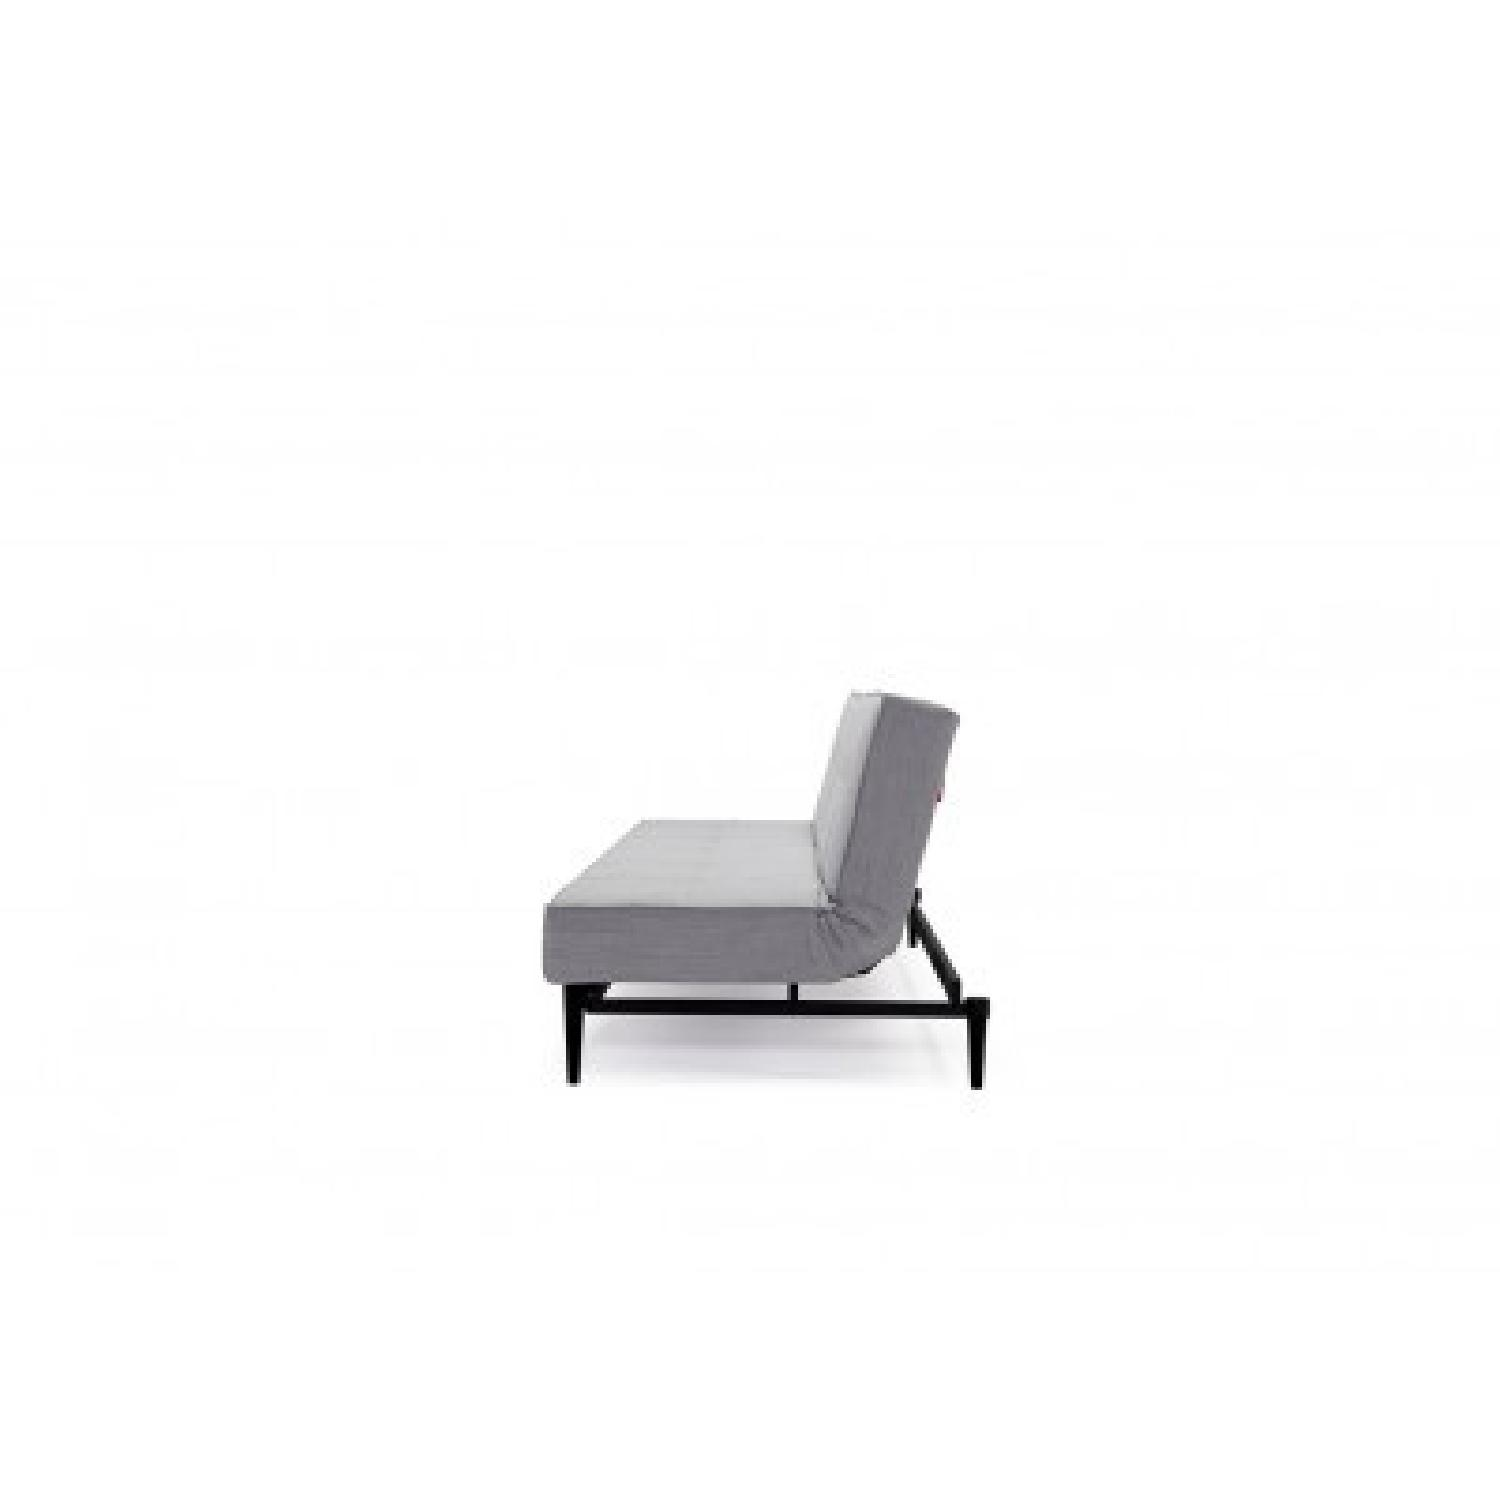 Innovation USA Danish Modern Splitback Sofa - image-1